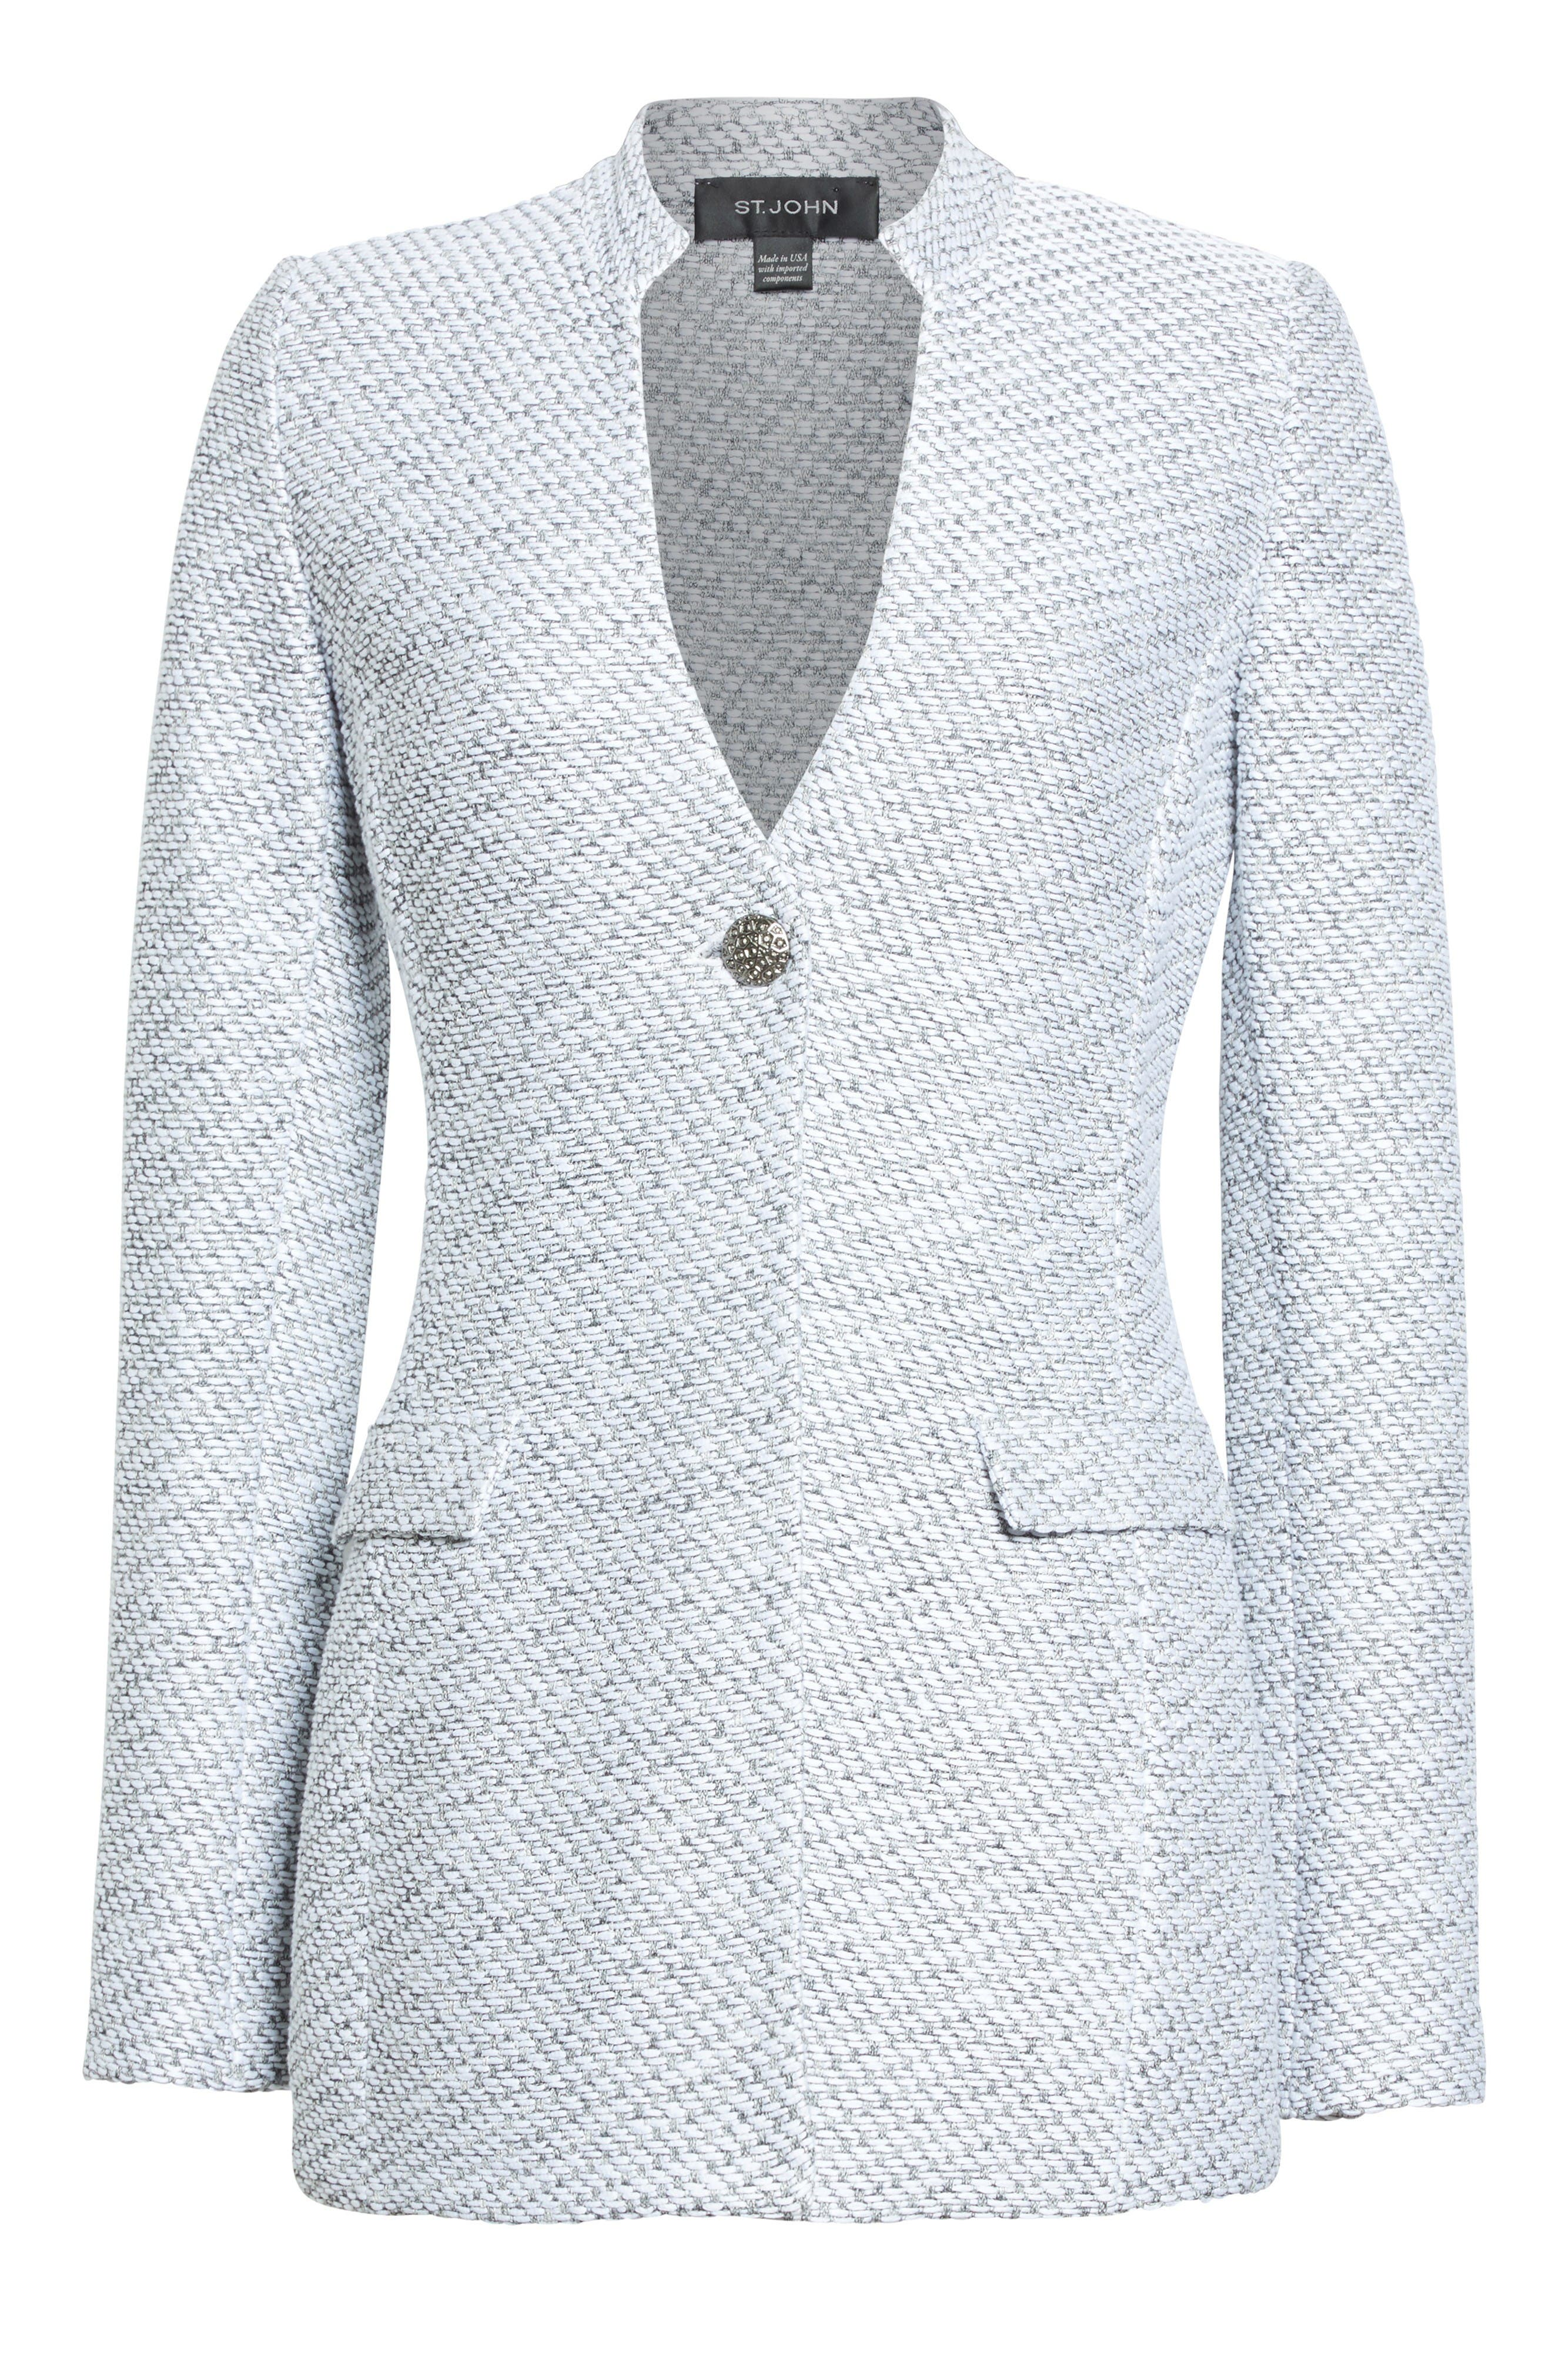 Gyan Knit Jacket,                             Alternate thumbnail 7, color,                             Bianco/ Mica Multi